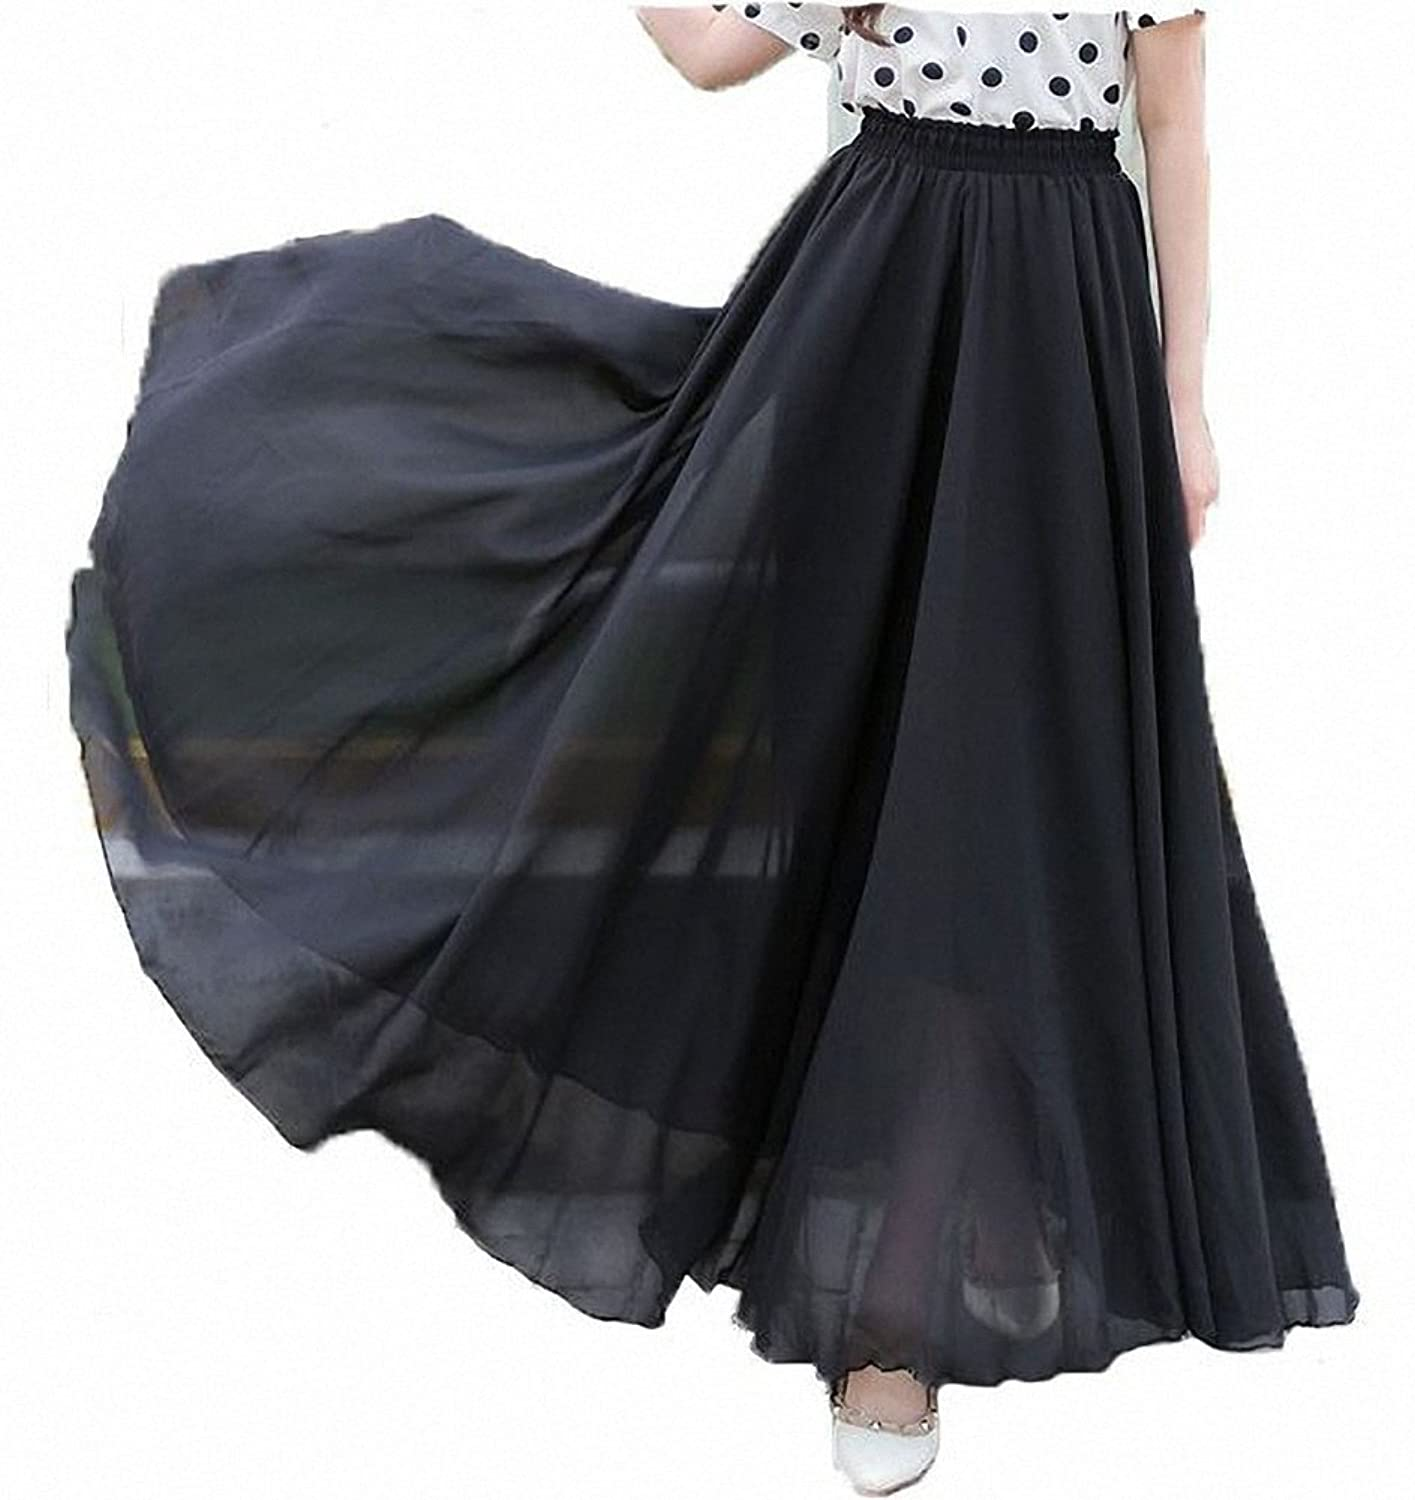 Victorian Skirts | Bustle, Walking, Edwardian Skirts Afibi Womens Chiffon Retro Long Maxi Skirt Vintage Dress $15.69 AT vintagedancer.com